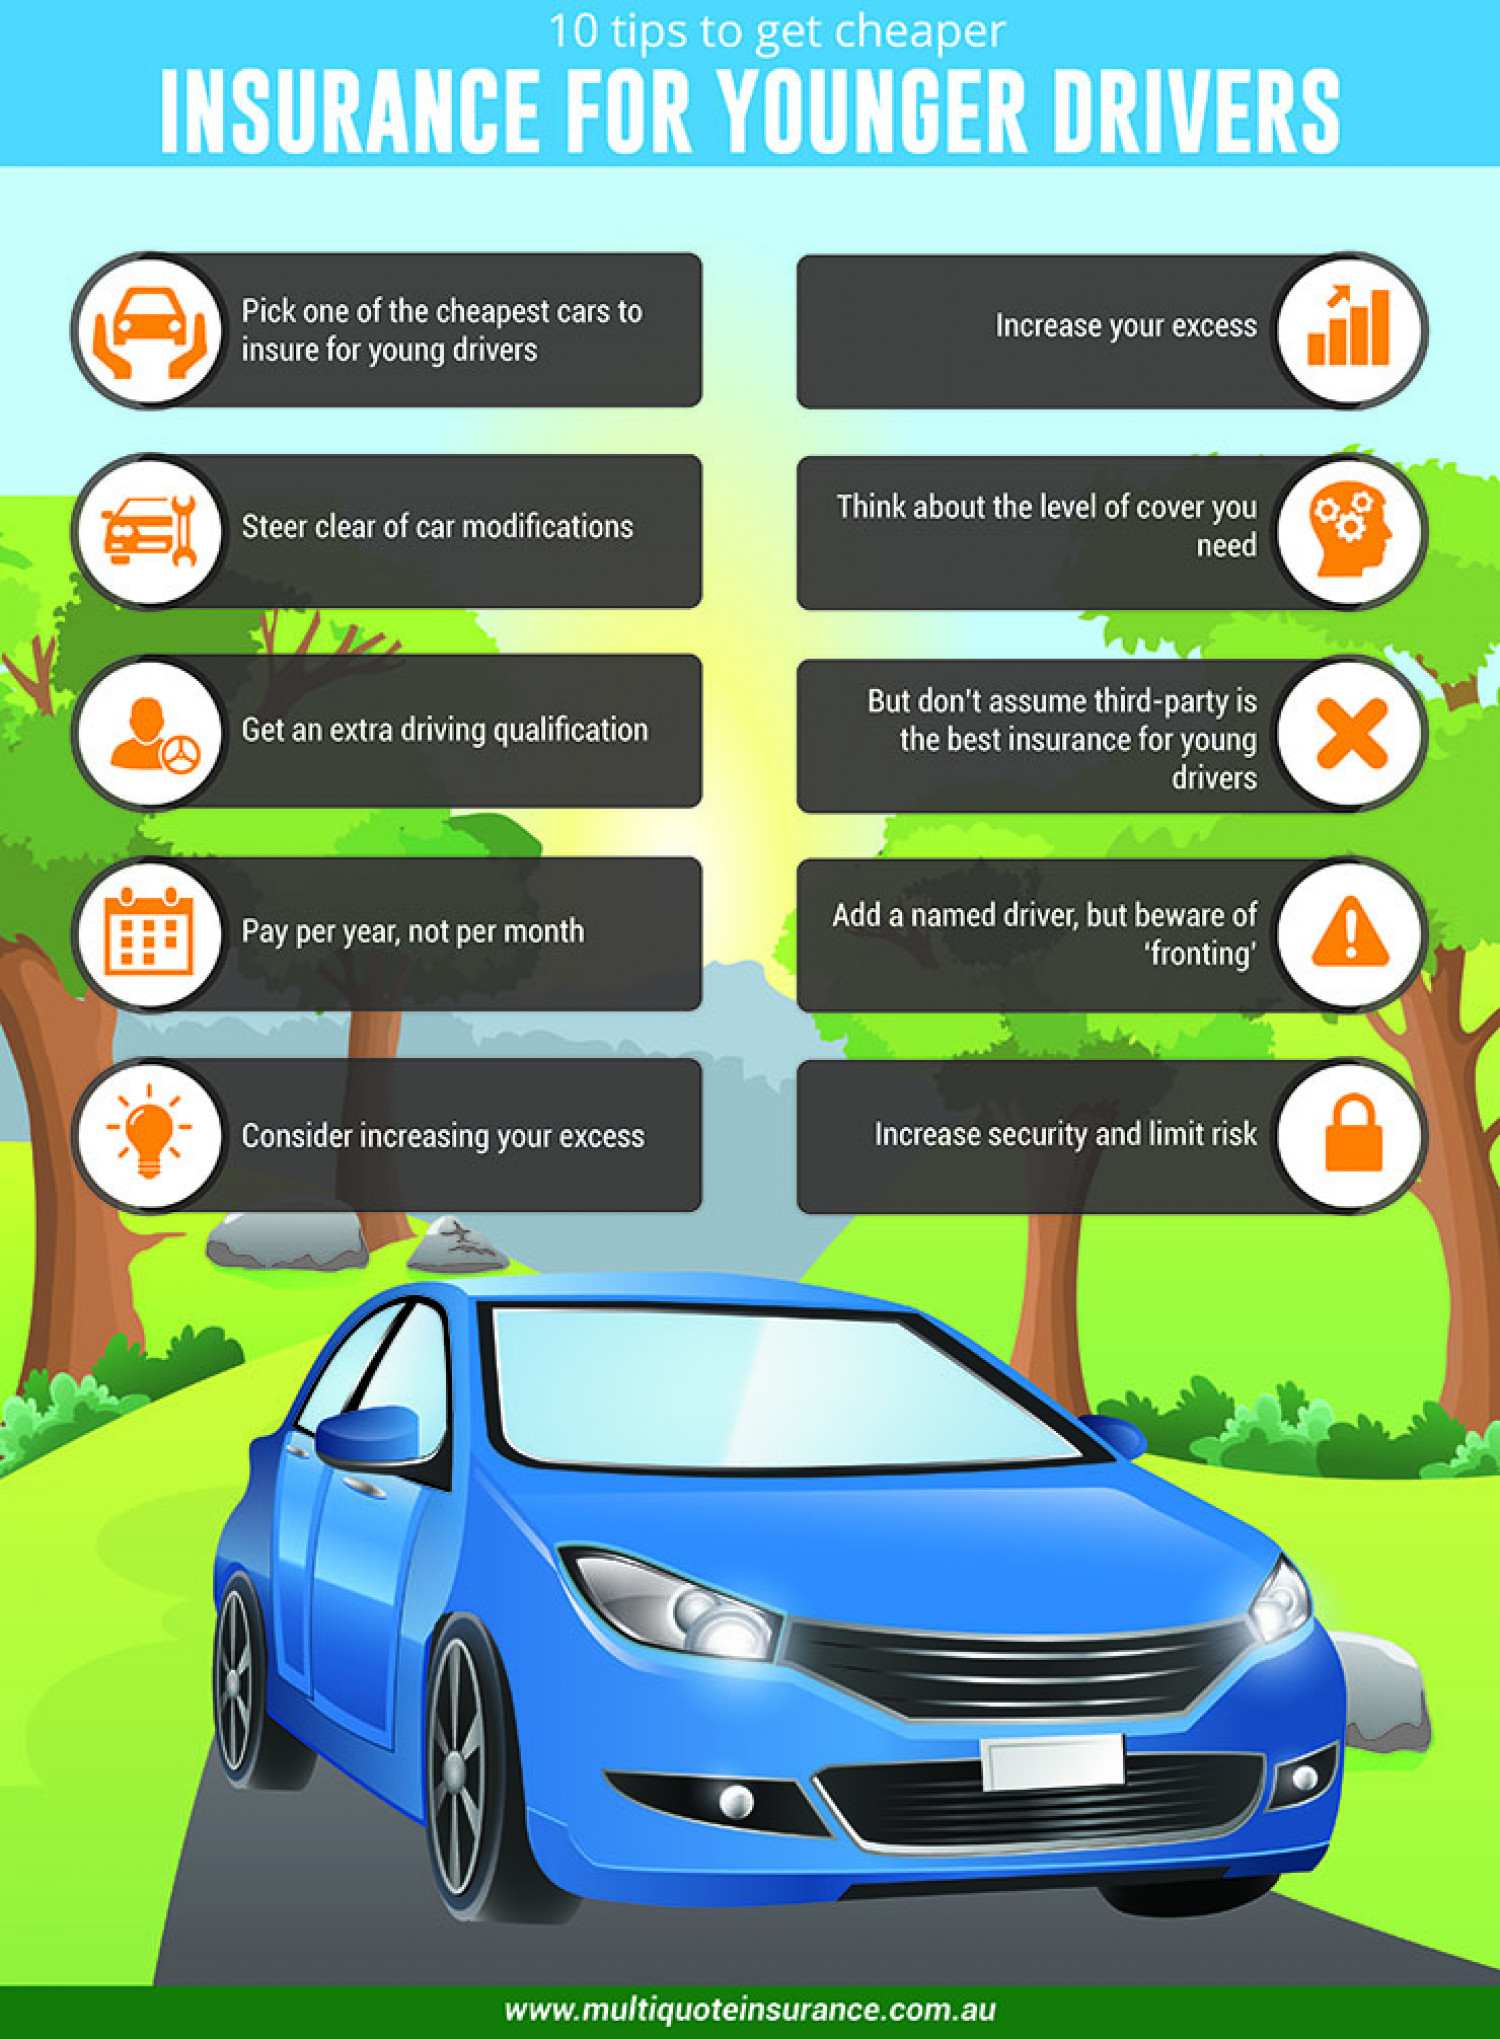 10 Tips For Cheaper Insurance For Young Drivers Visual Ly